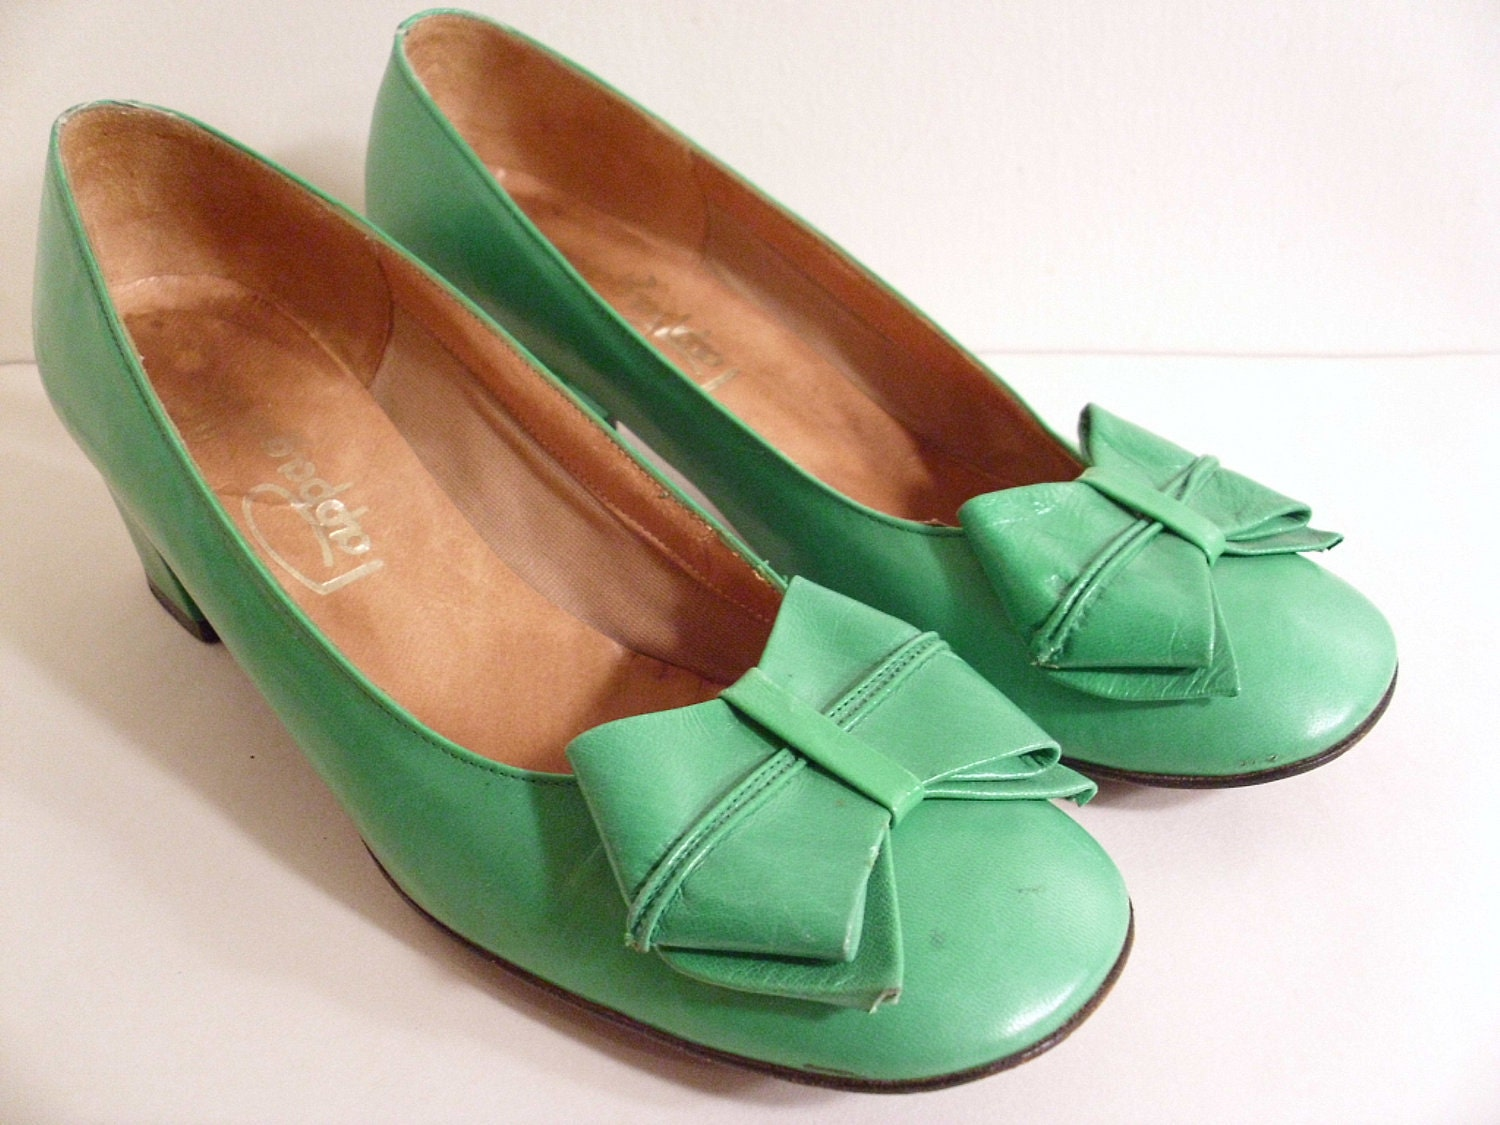 Vintage Green Leather Pappagallo Shoes 6 1/2 M